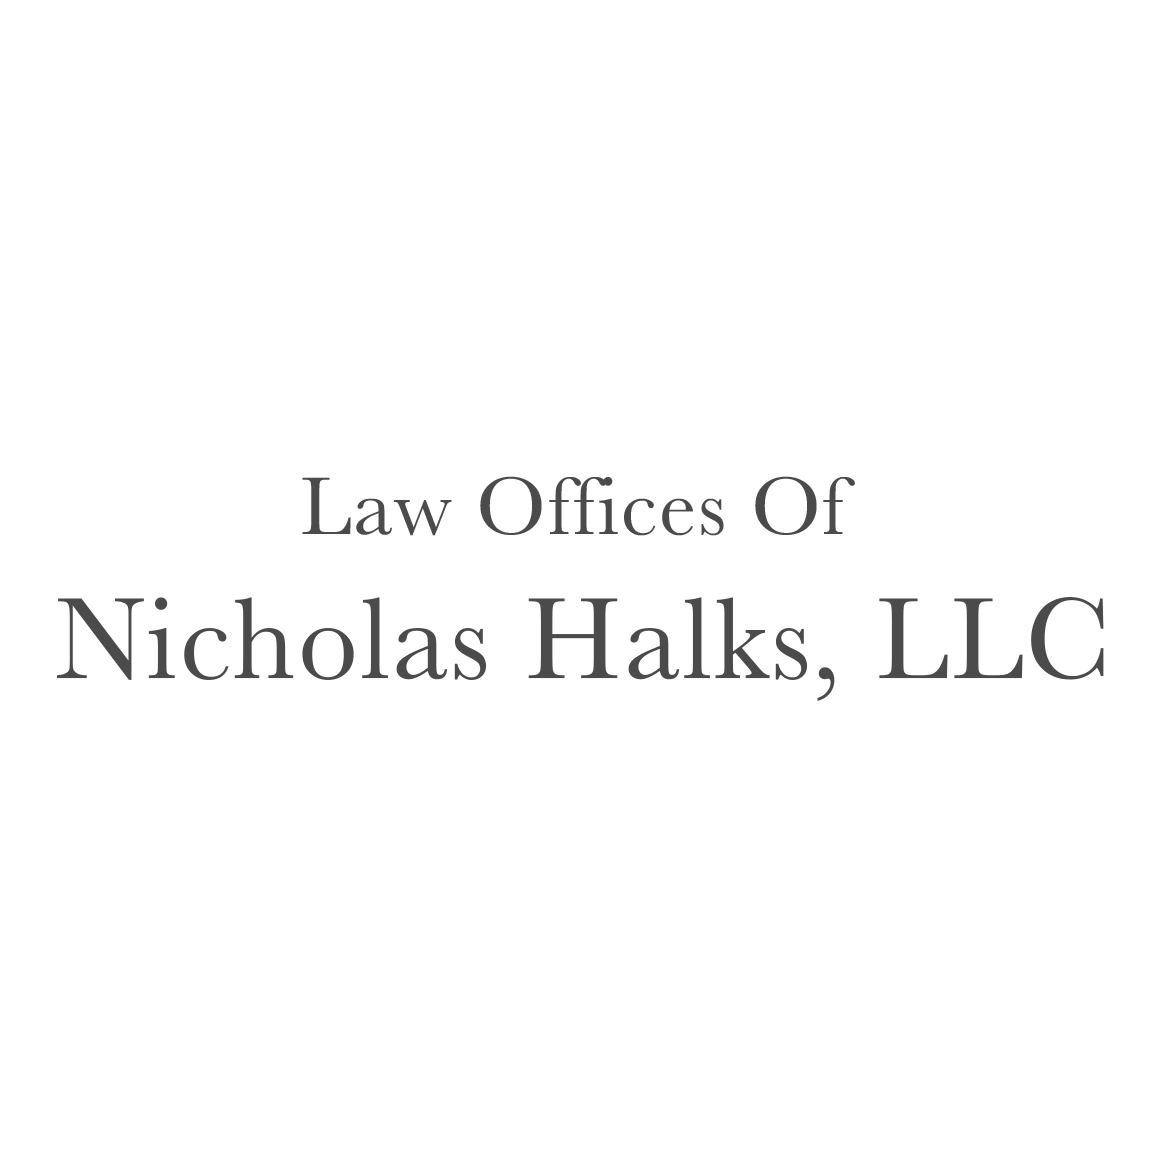 The Law Offices Of Nicholas Halks